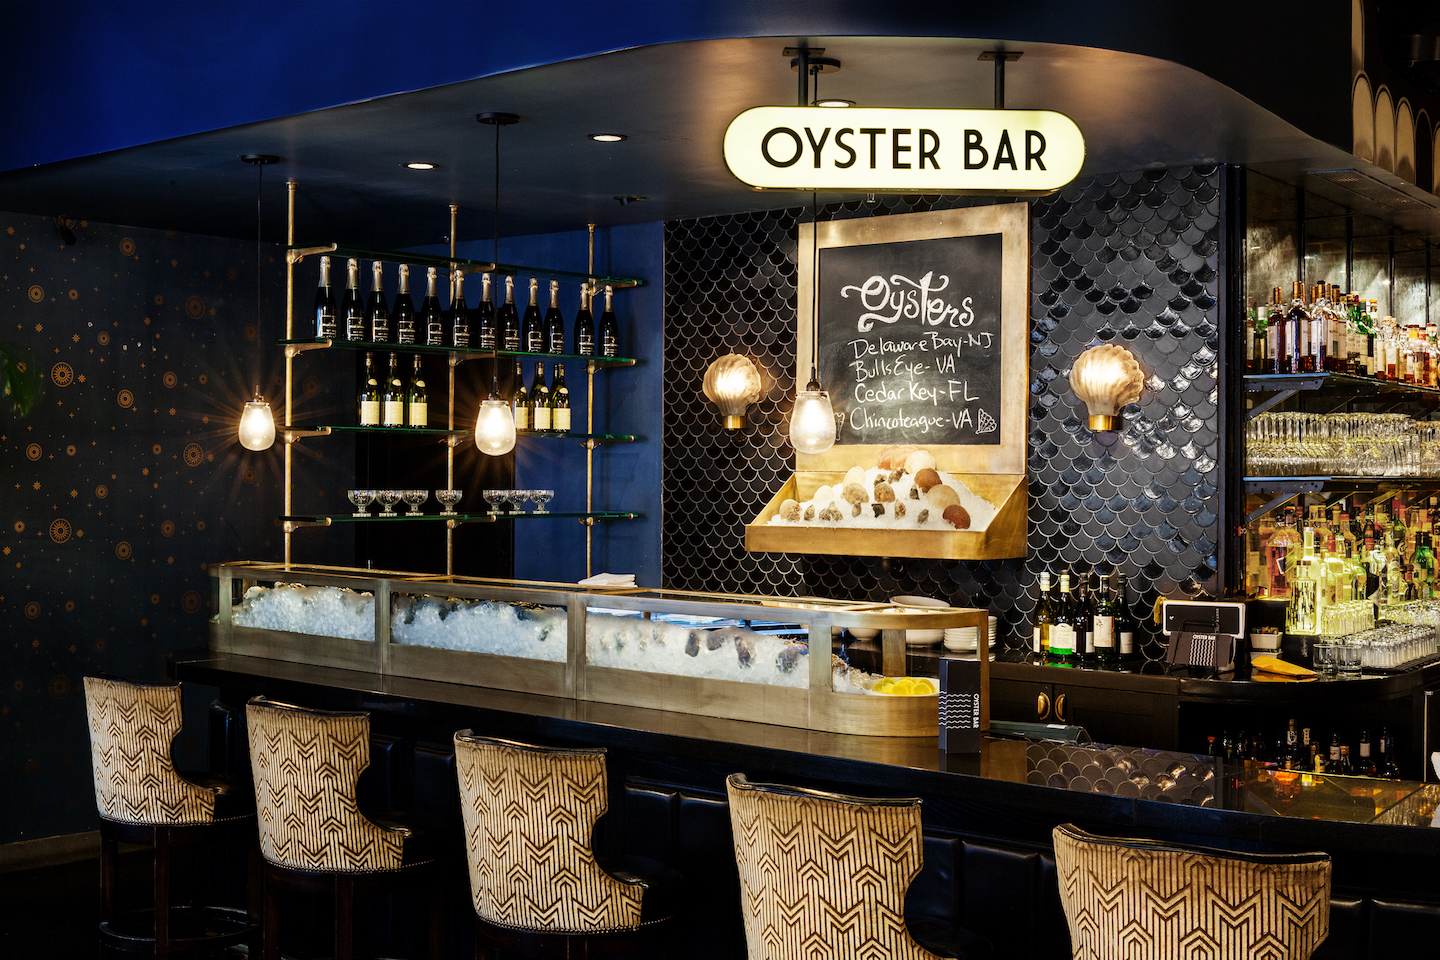 The Oyster Bar features custom brushed brass cold display cases, vintage clam-shell lighting sconces and Moroccan fish-scales mosaic tile.